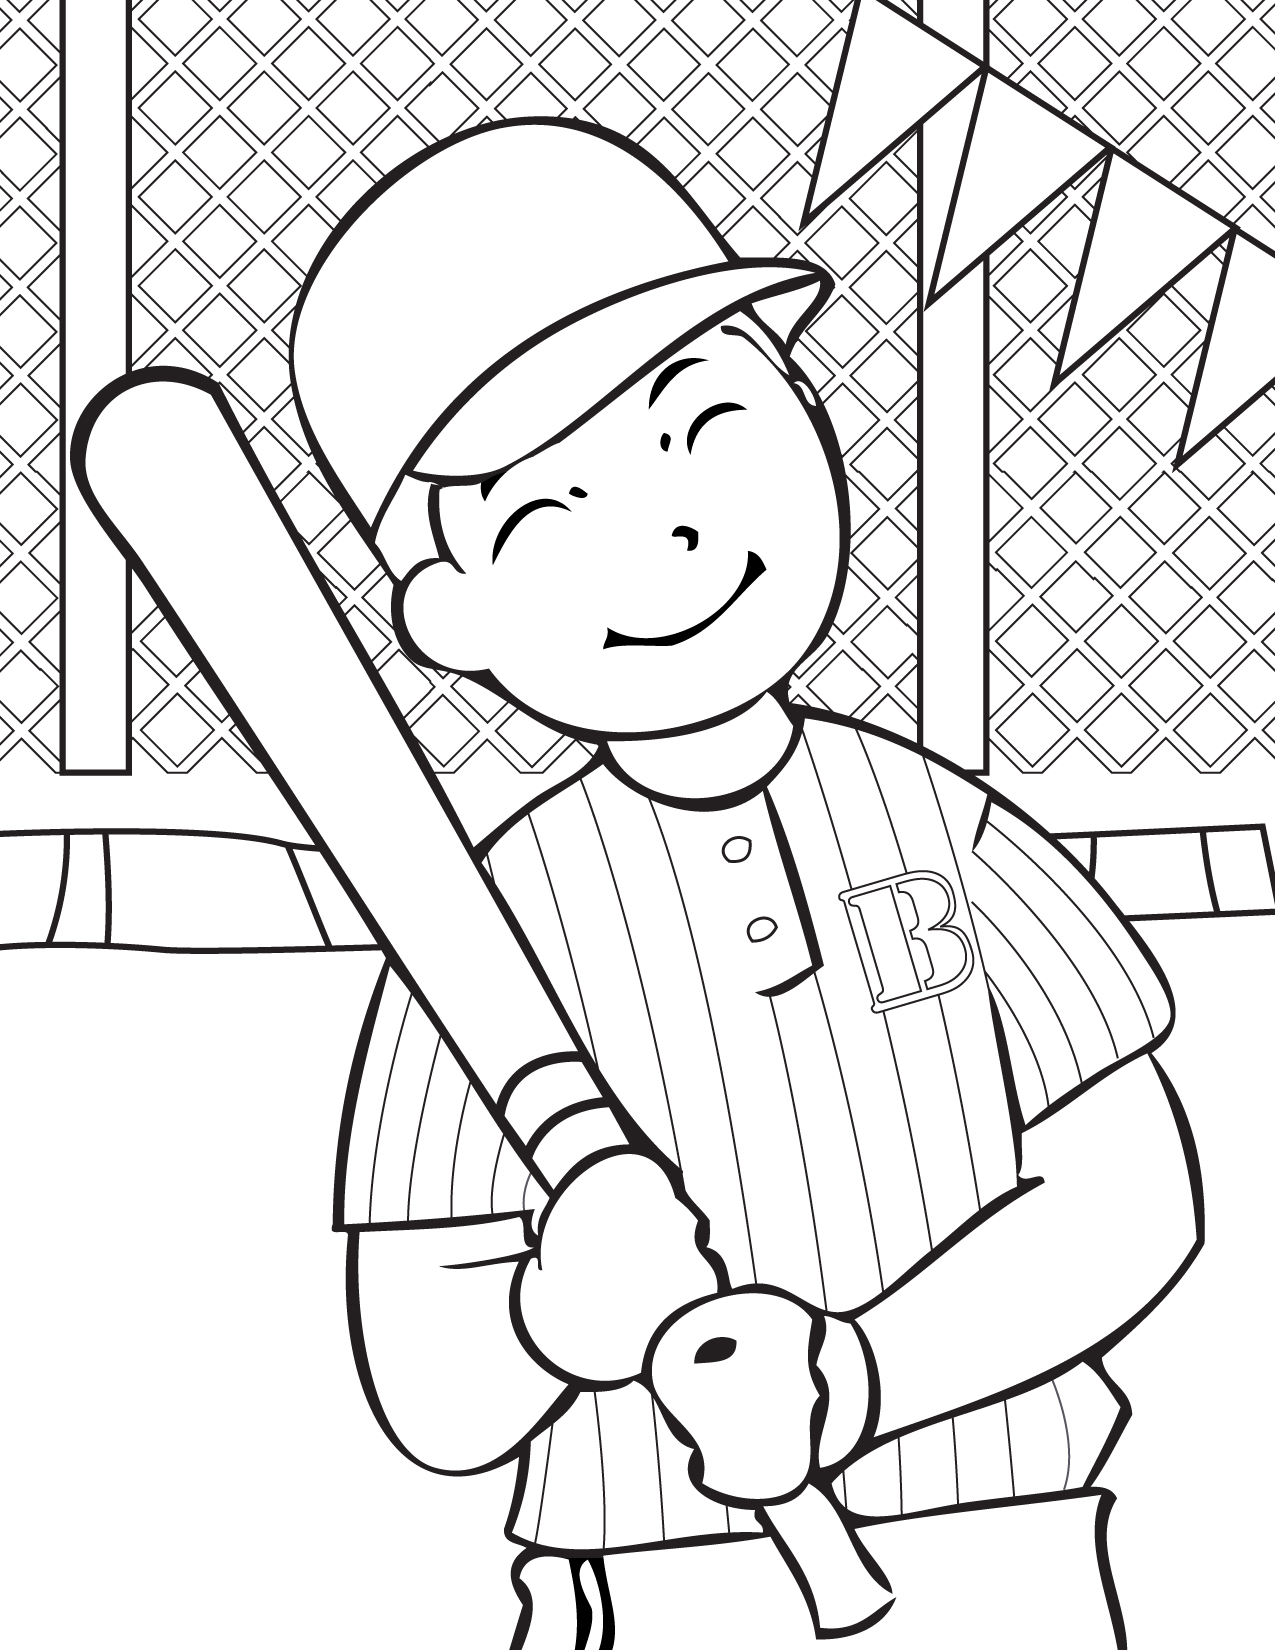 Free printable baseball coloring pages for kids best for Coloring pages to color online for free